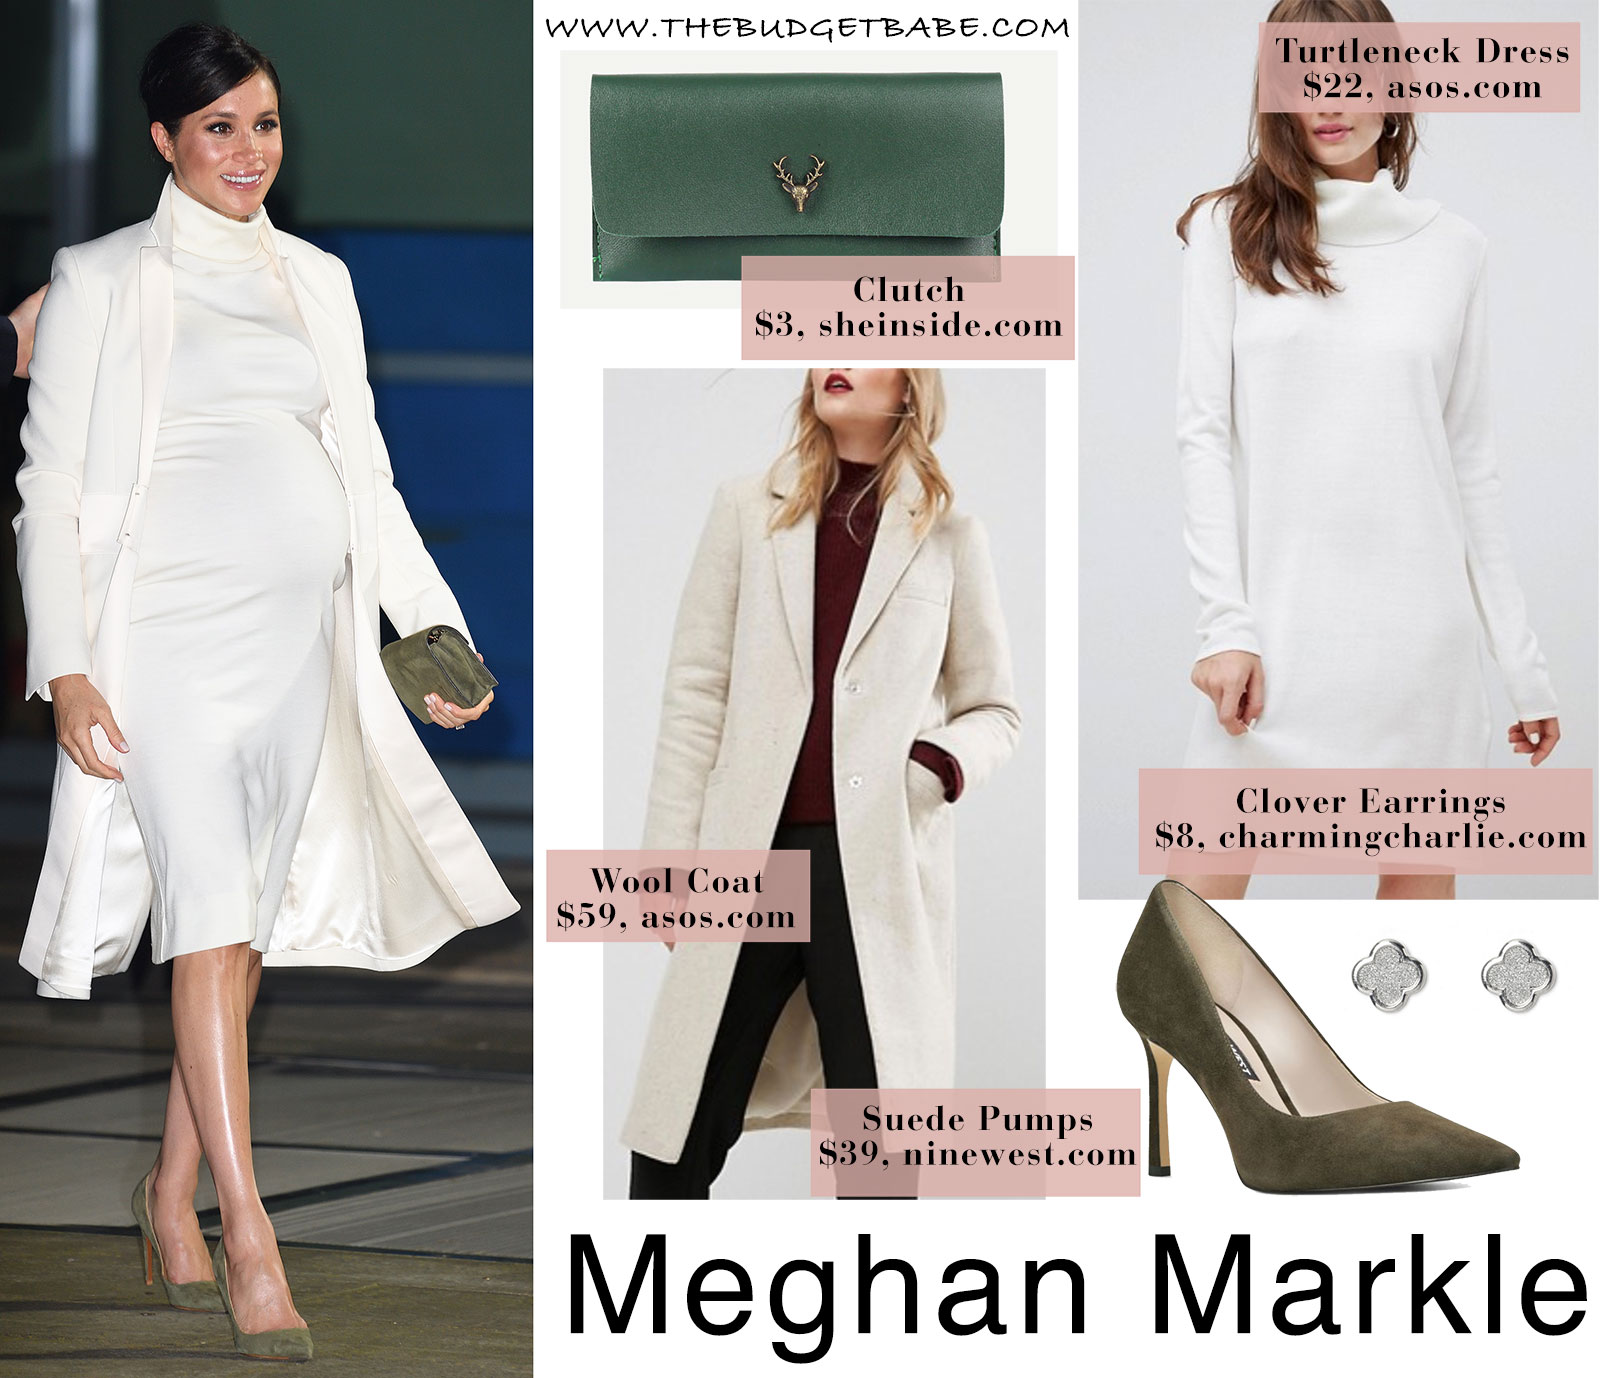 Meghan Markle's white turtleneck dress and matching coat